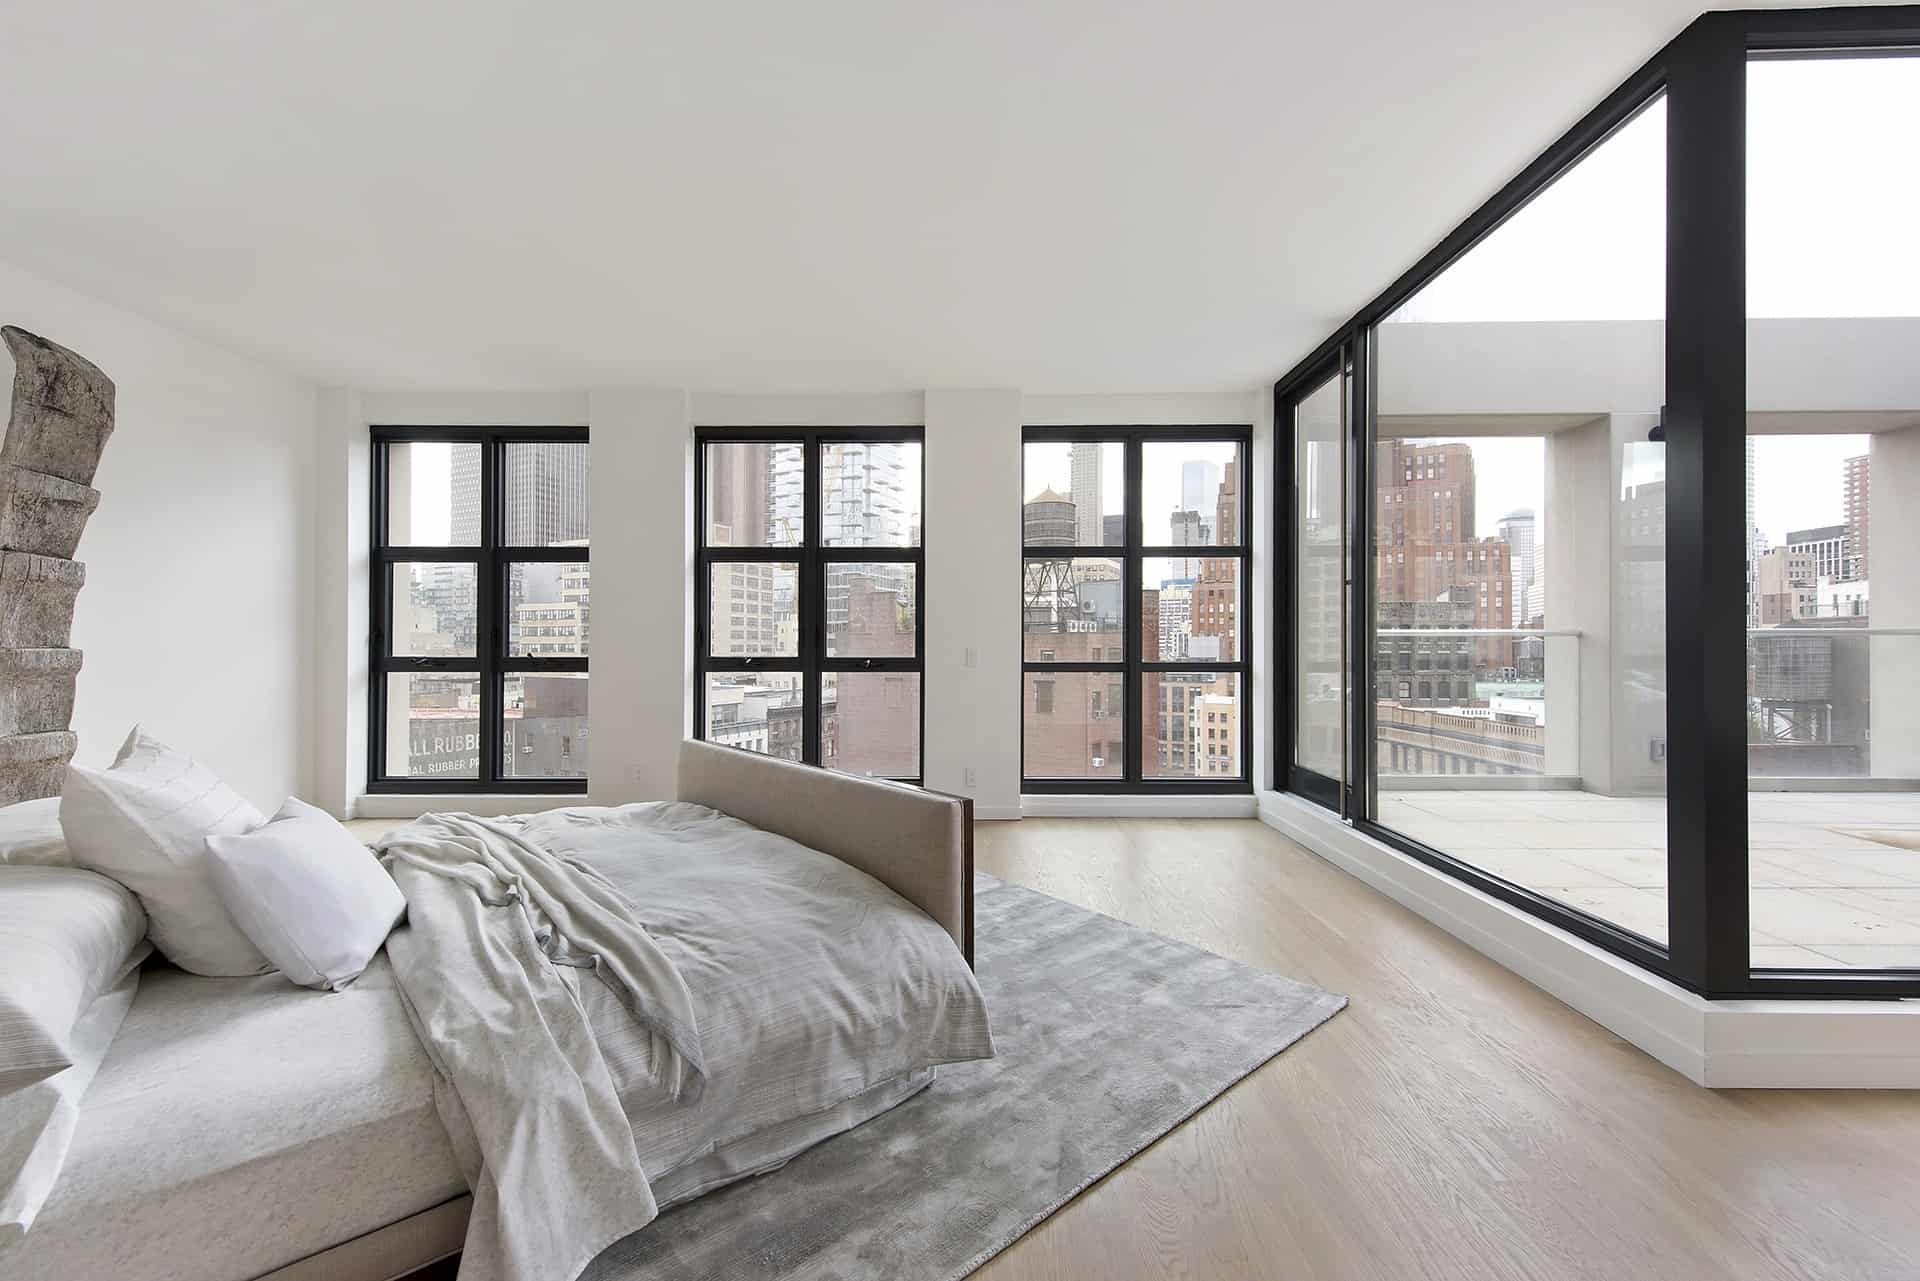 Minimalist-Penthouse-New York-13-1 Kindesign